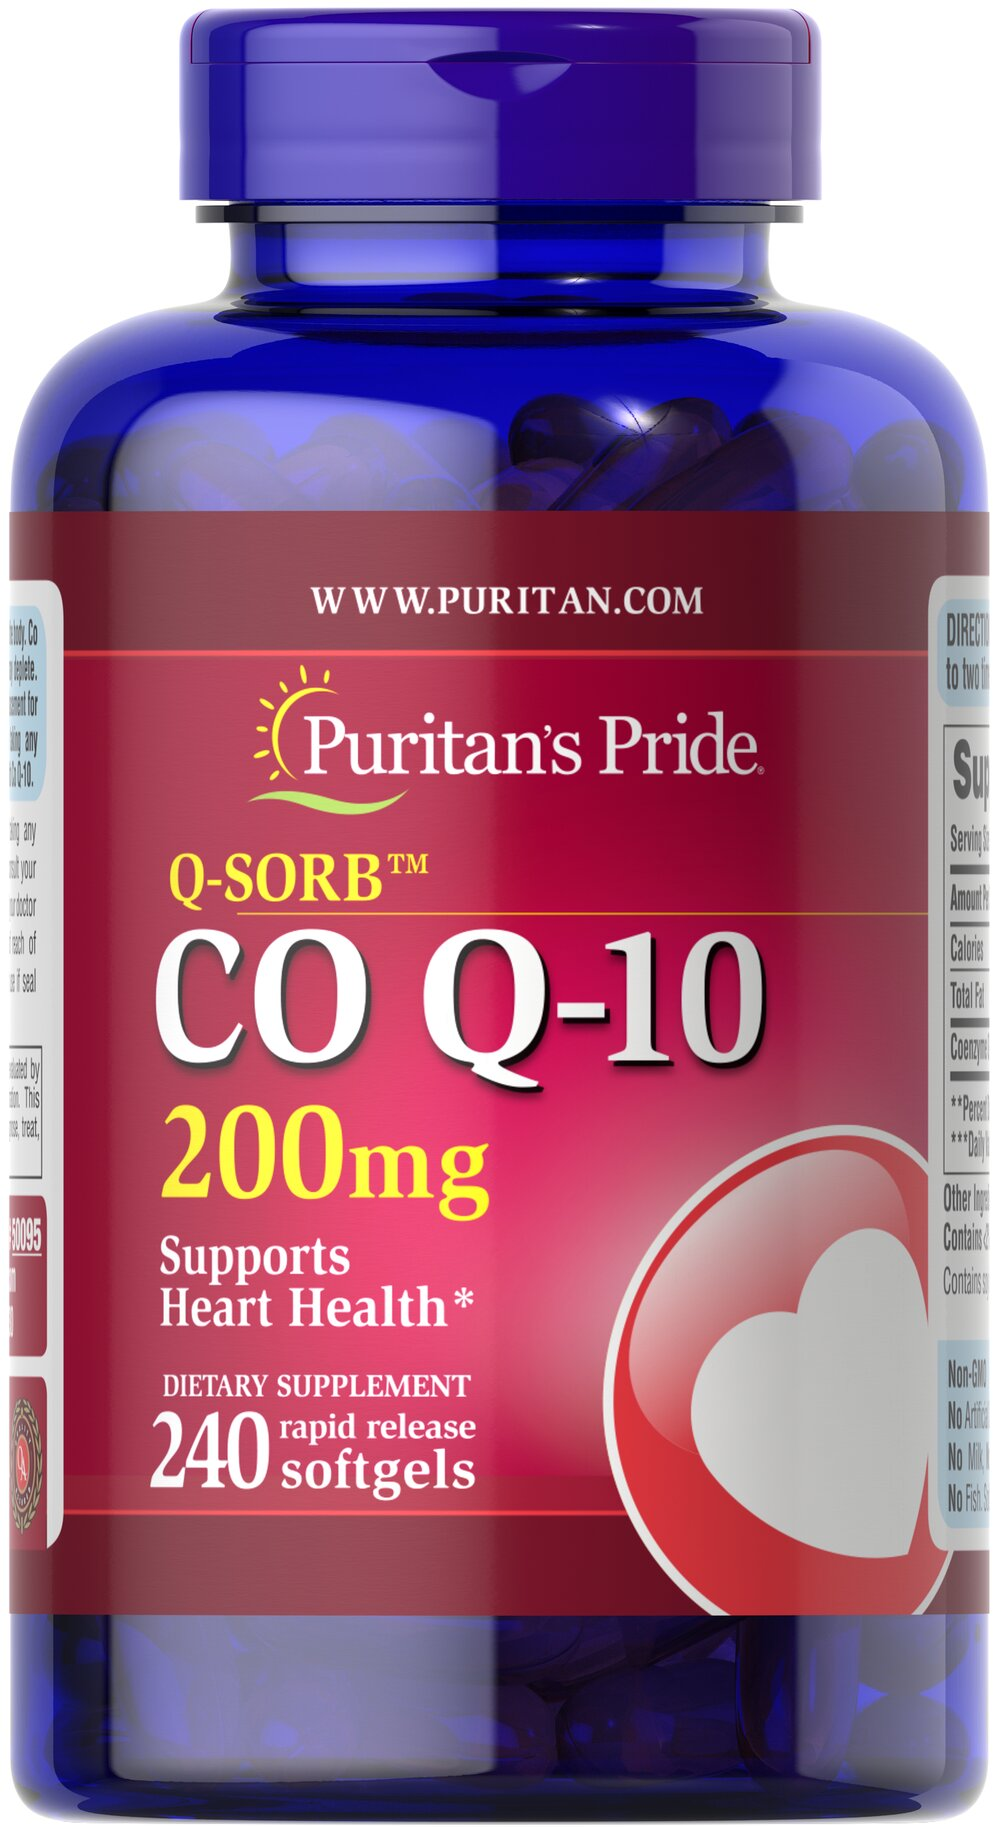 Q-SORB™ Co Q-10 200 mg  240 Rapid Release Softgels 200 mg $79.99